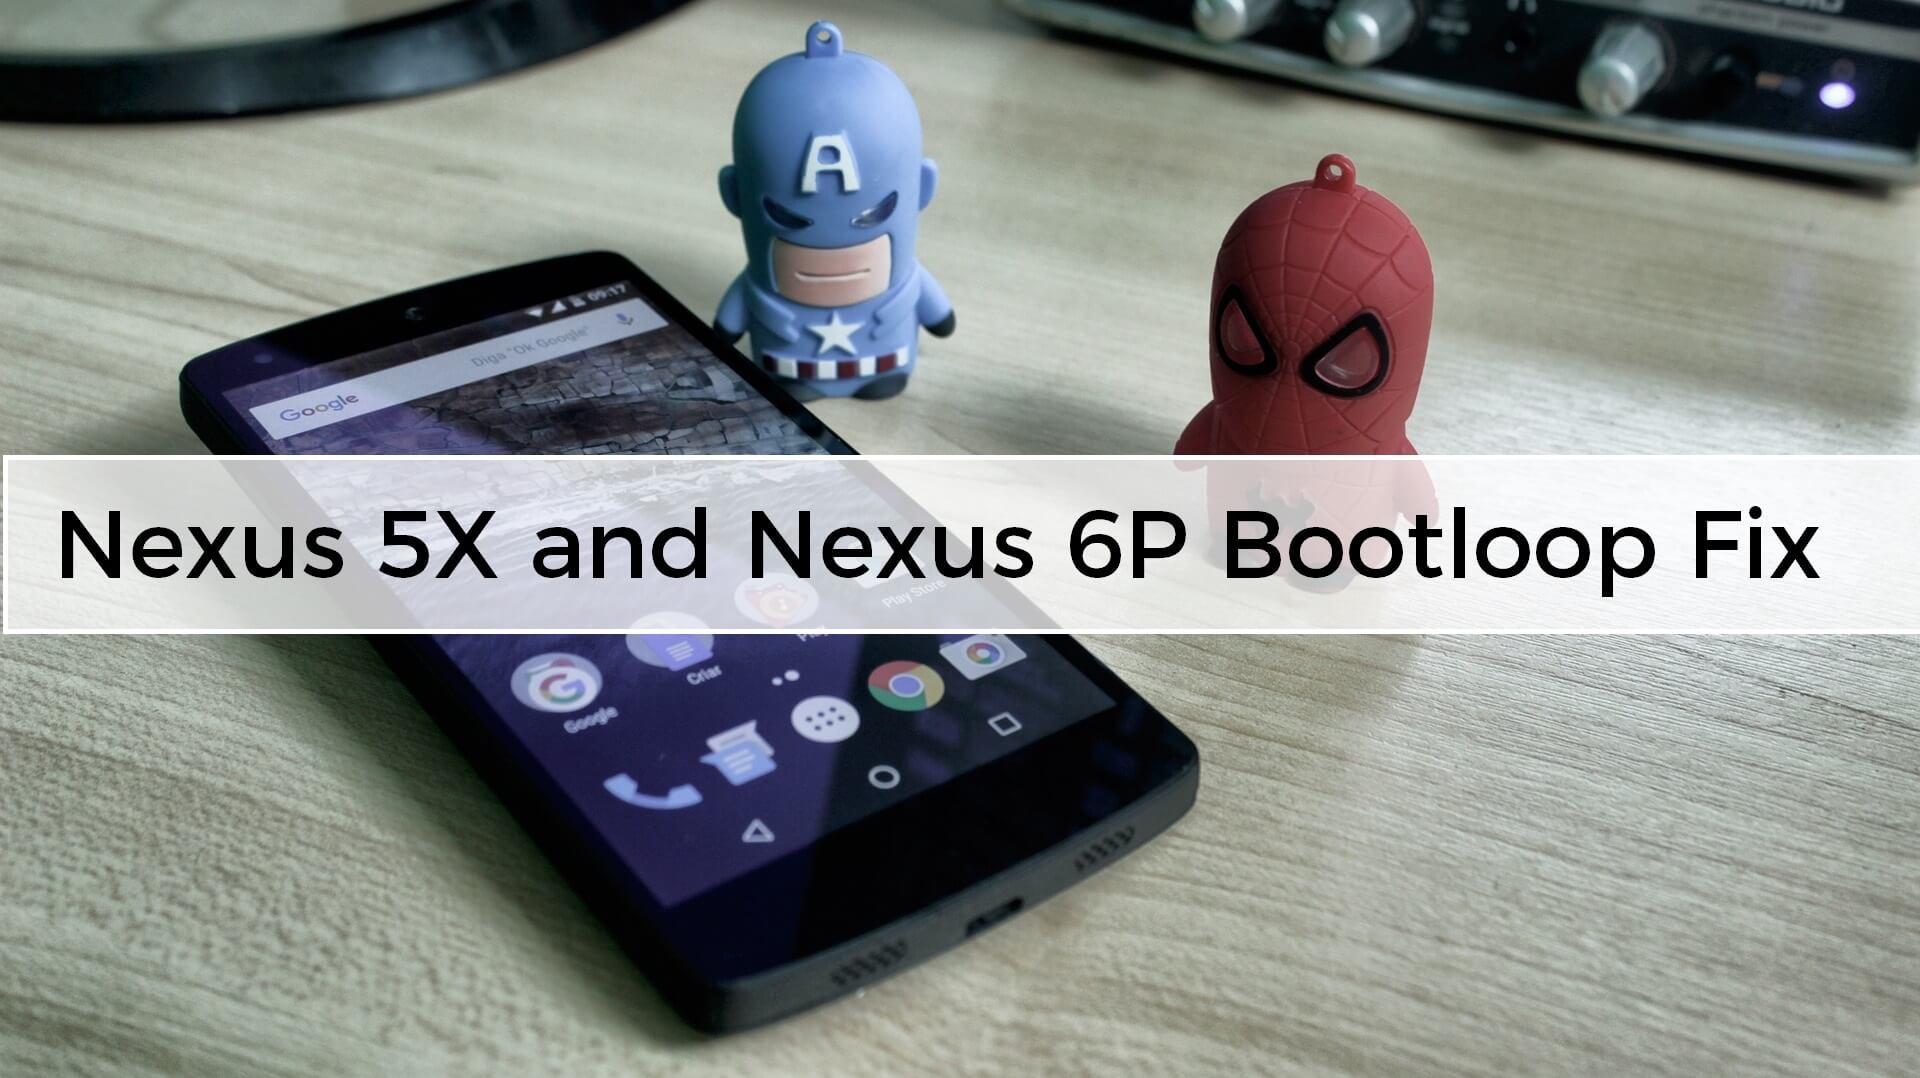 Nexus 5X and Nexus 6P Bootloop Fix